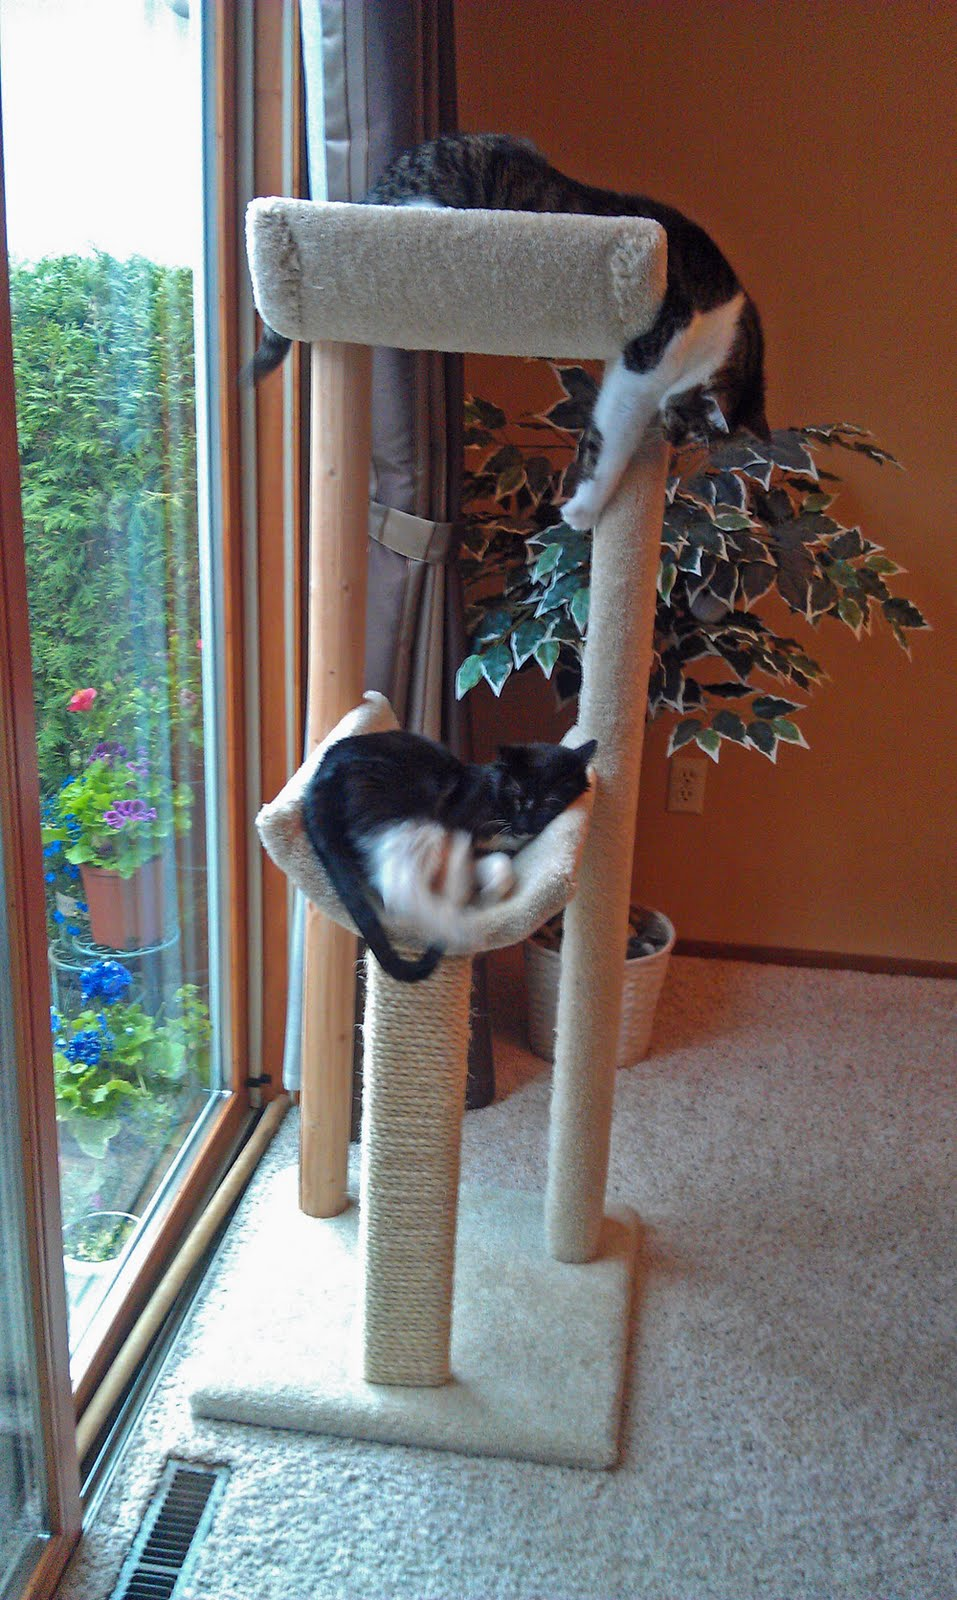 ... Laurence: Jackson Galaxy Said To Get A Cat Tree - 957x1600 - jpeg